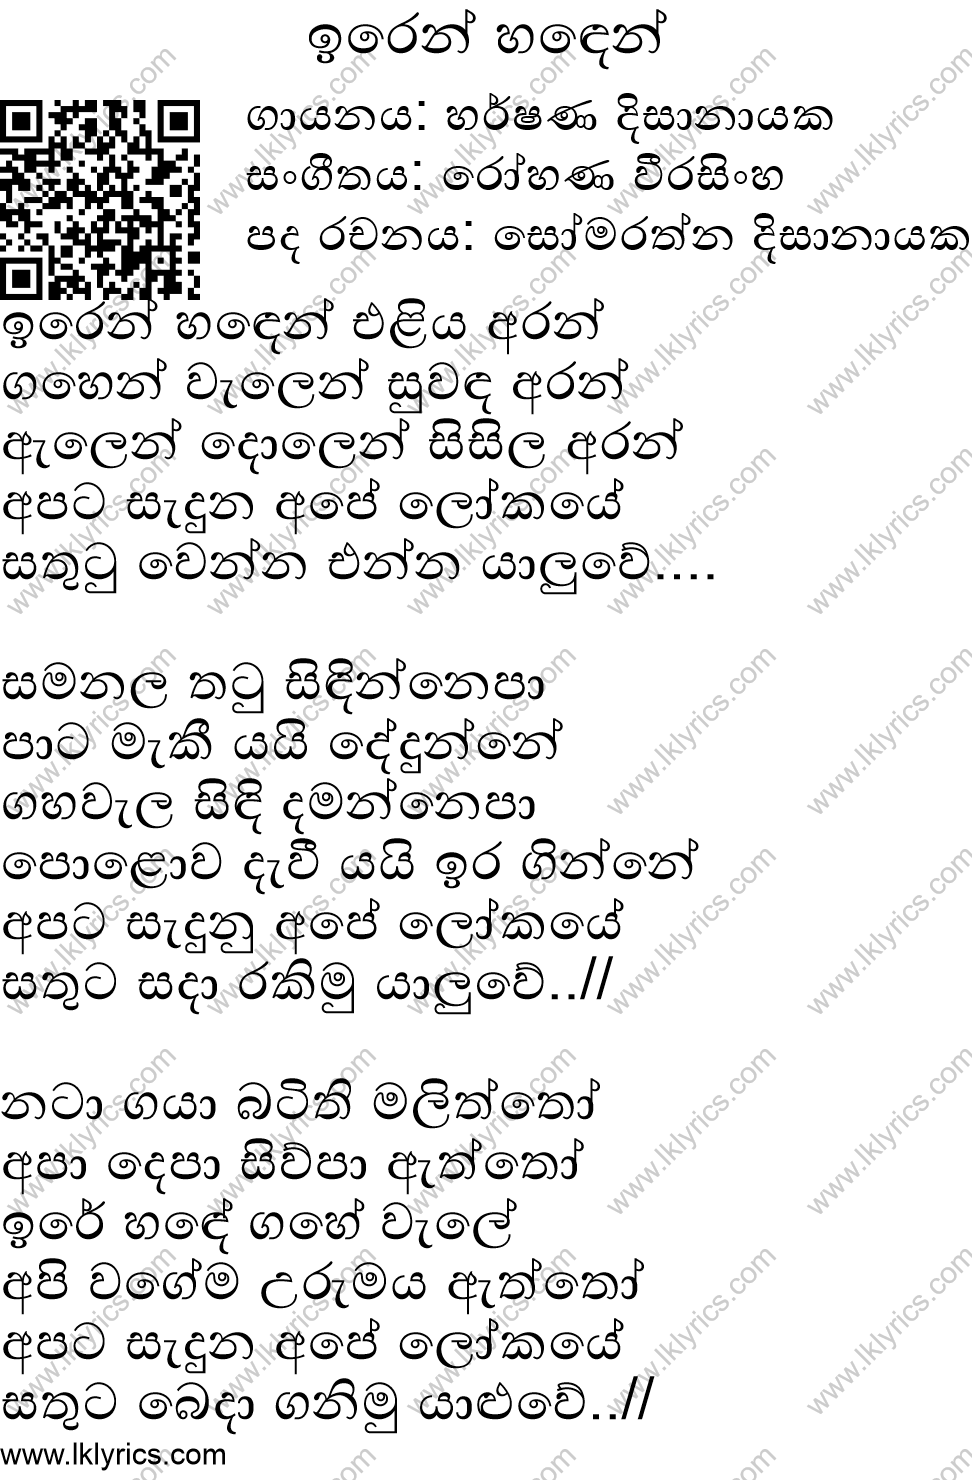 Iren Handen Lyrics Lk Lyrics Lyrics Songs Past Papers